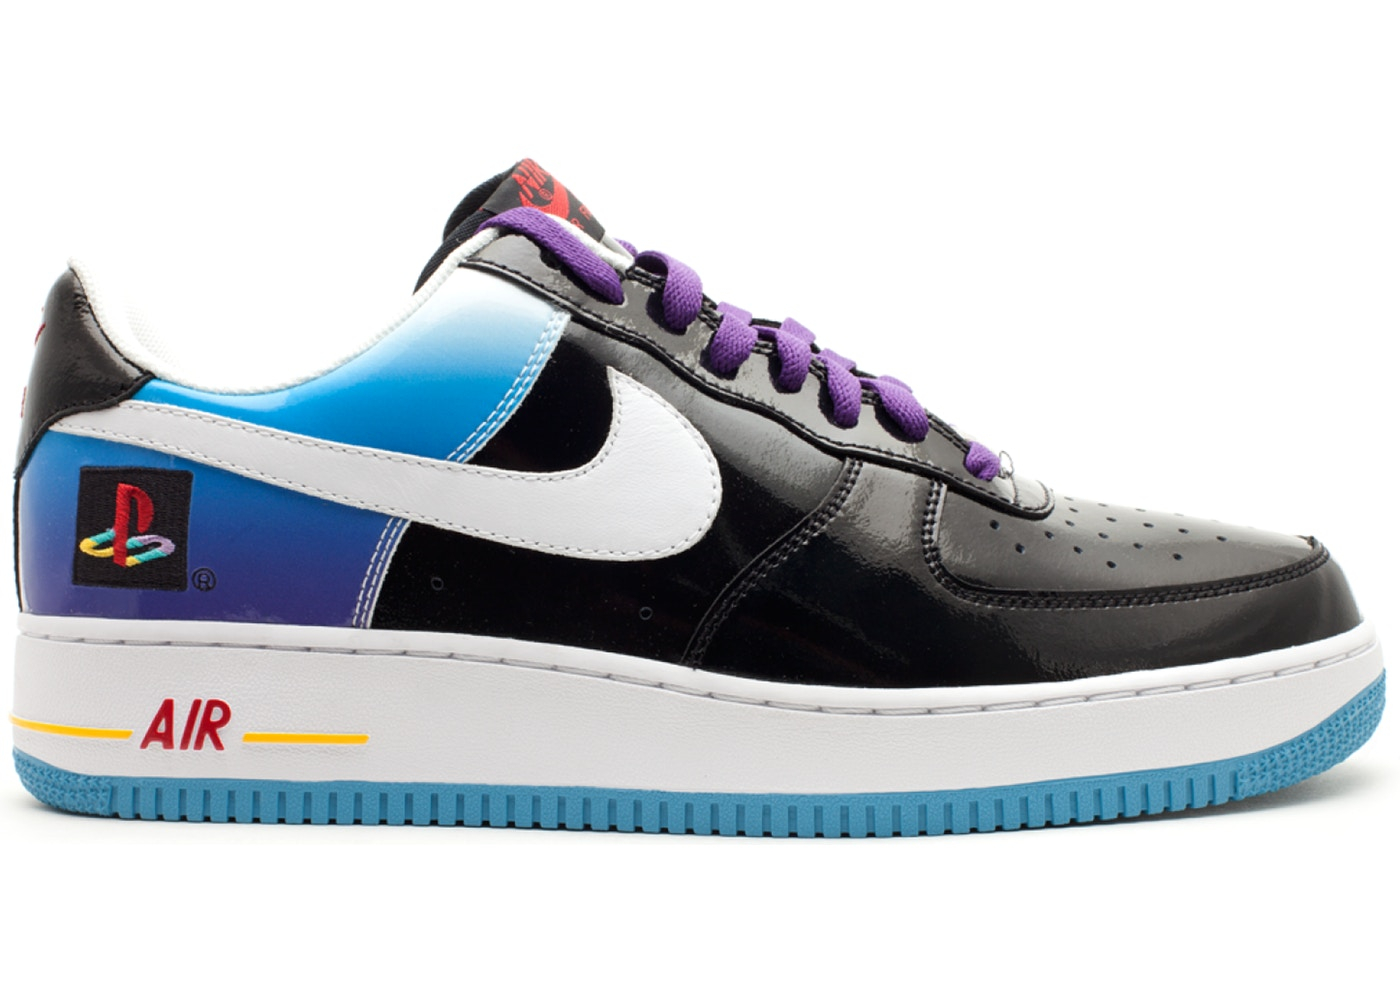 87120769a49 Nike Air Force 1 Shoes - Average Sale Price